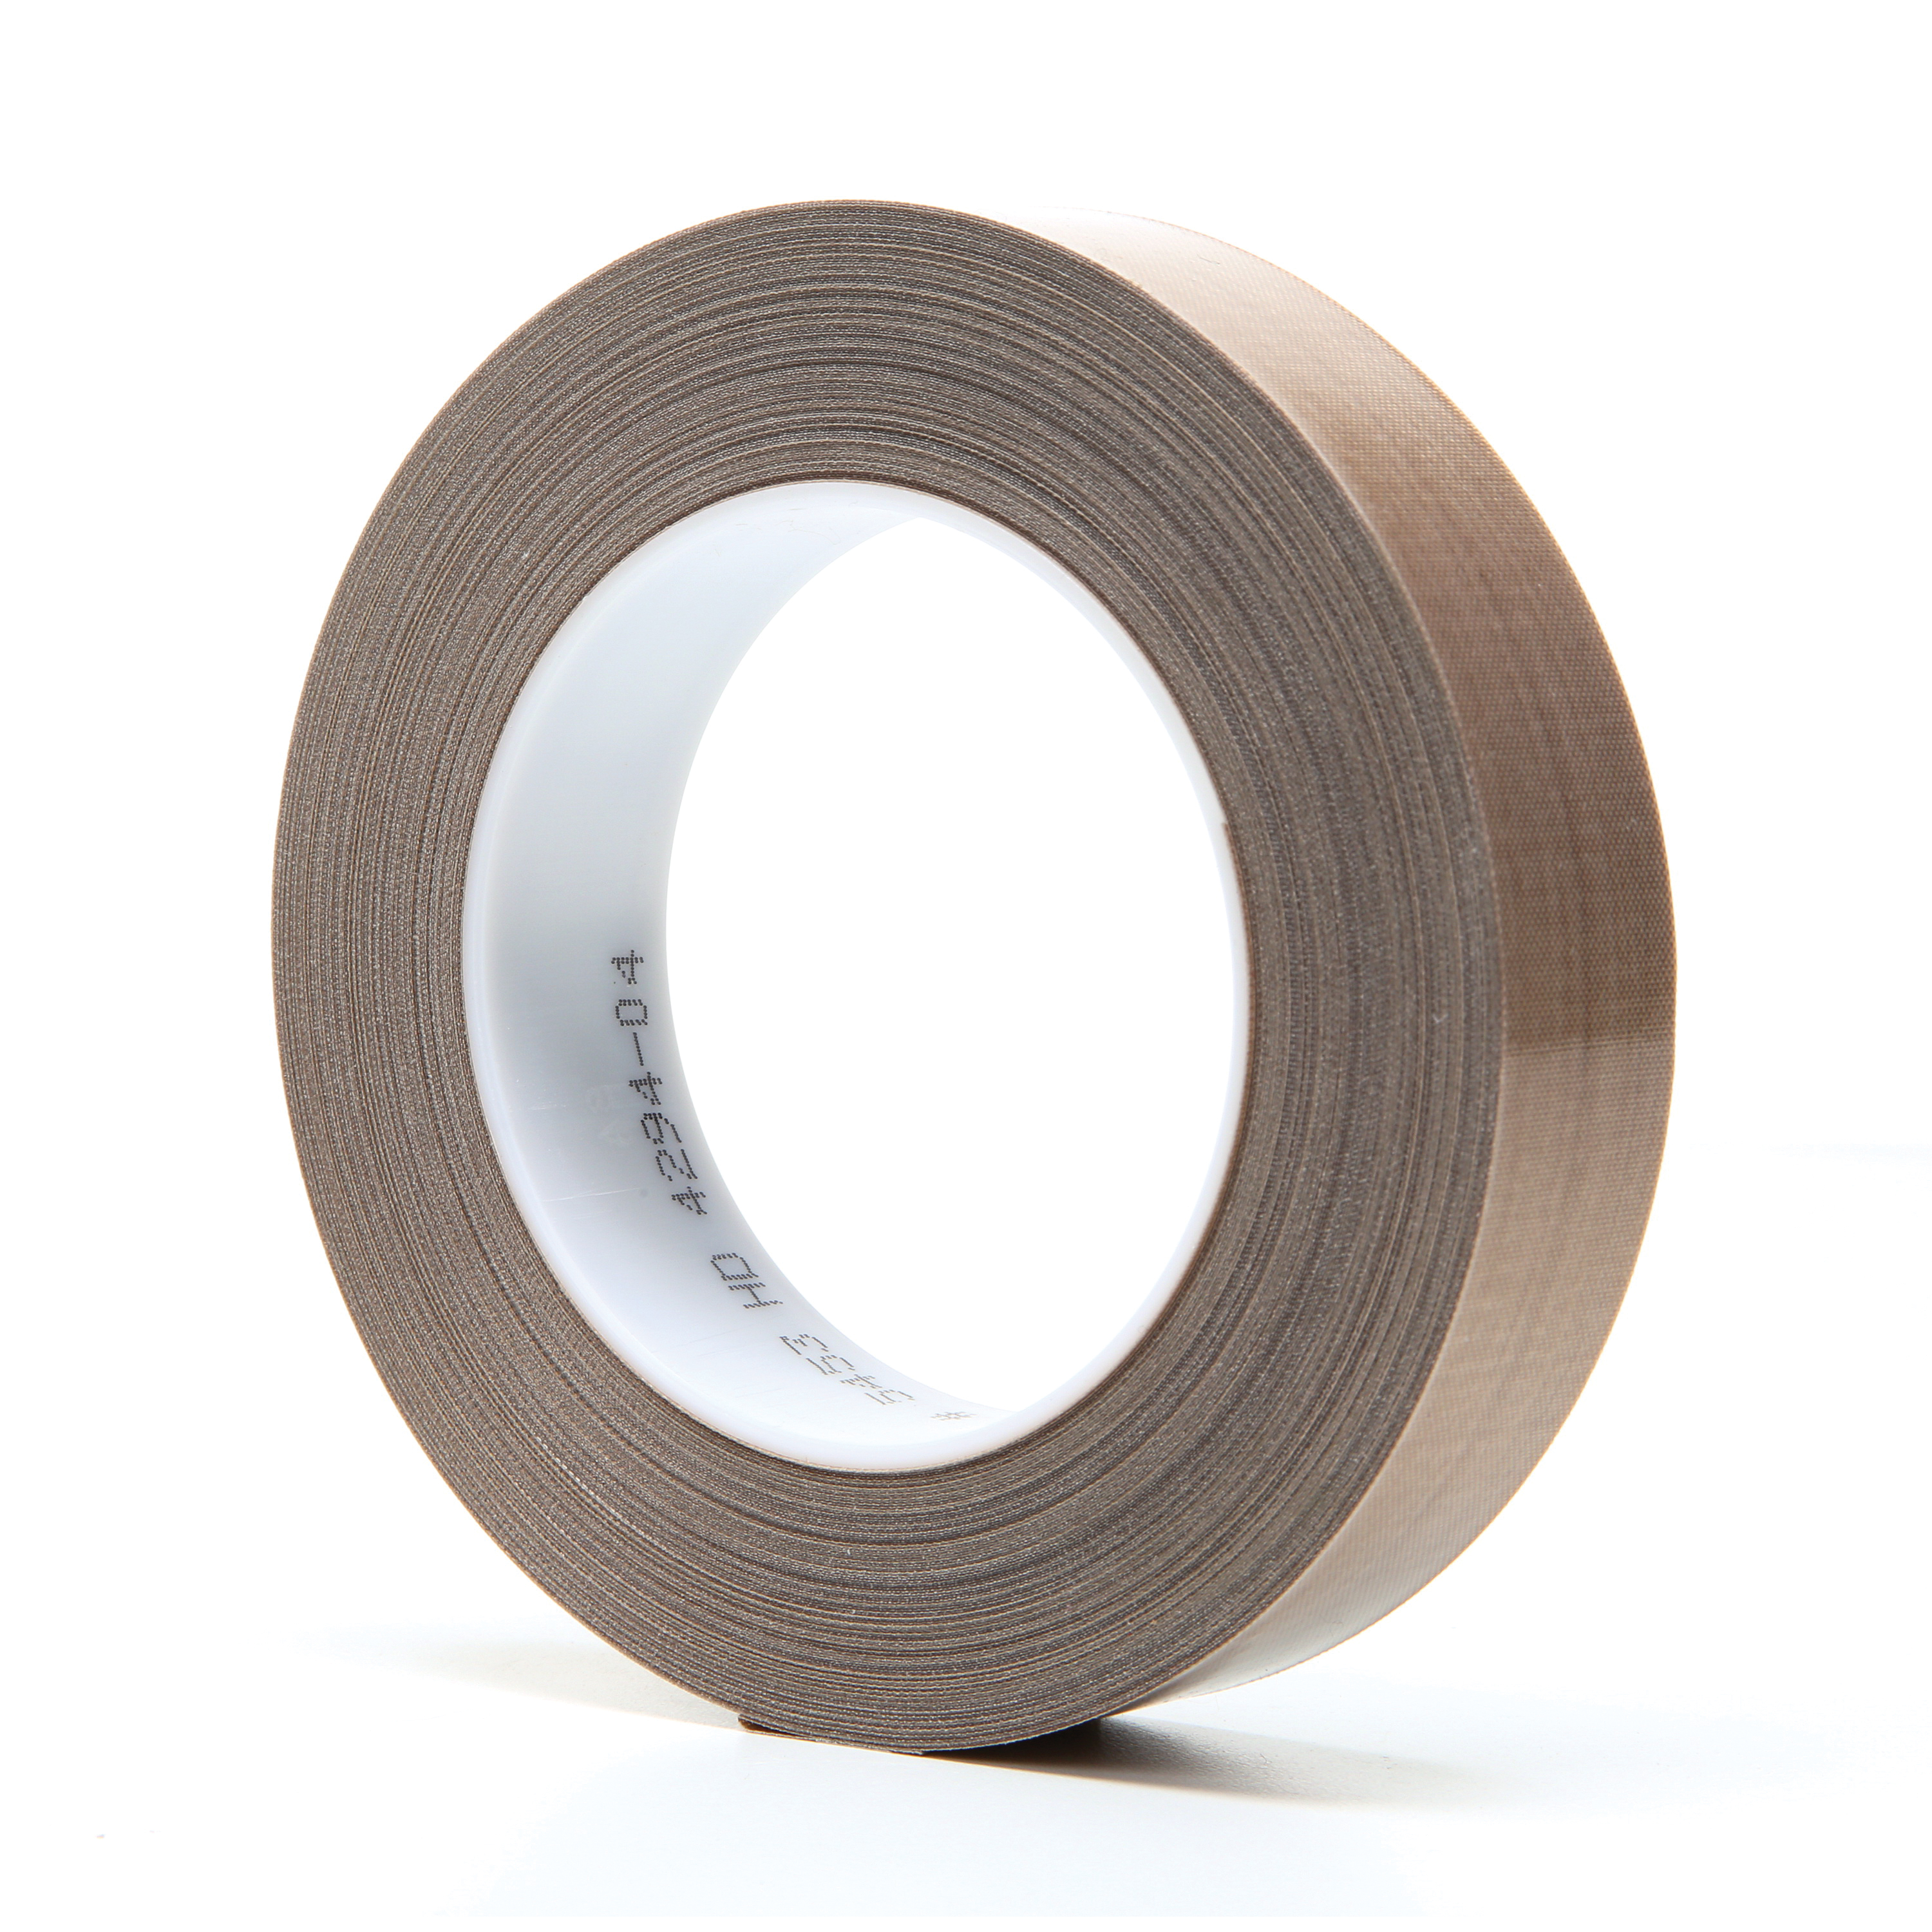 3M™ 021200-16160 Pressure Sensitive Glass Cloth Tape, 36 yd L x 1 in W, 8.2 mil THK, Silicone Adhesive, 6 mil Woven Glass Cloth Impregnated with PTFE Backing, Brown